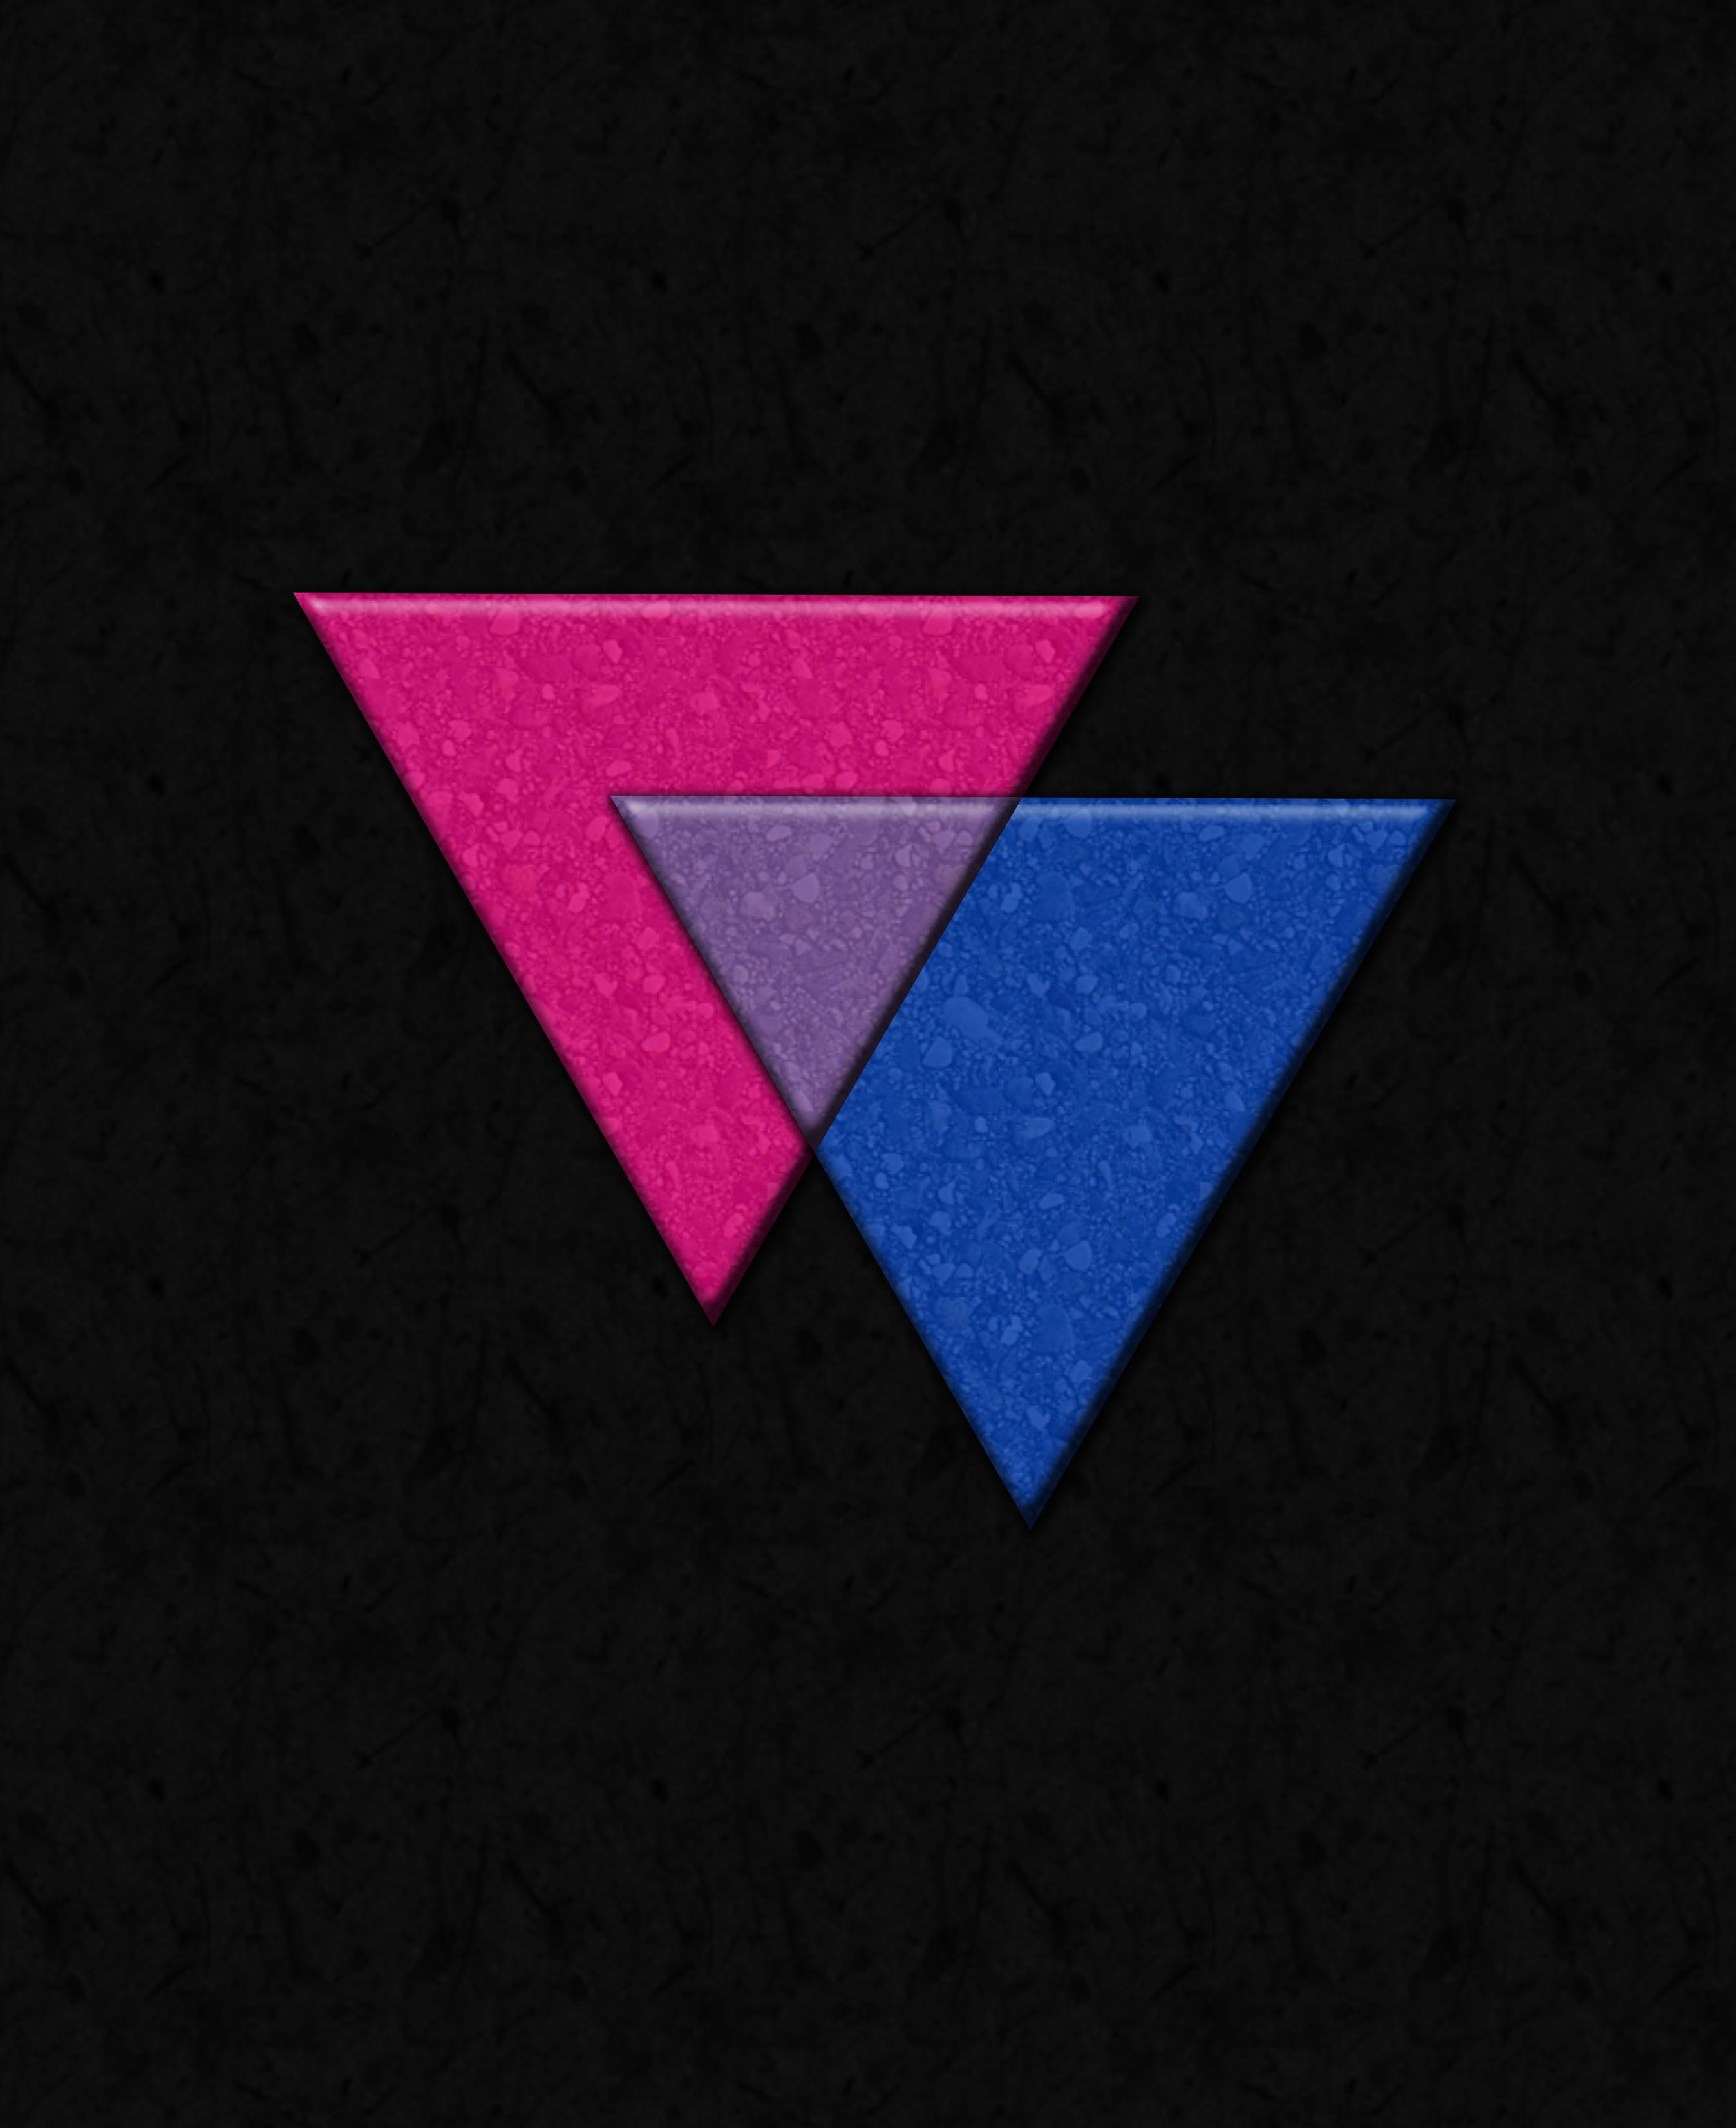 Accept. The symbolism triangle bisexual more